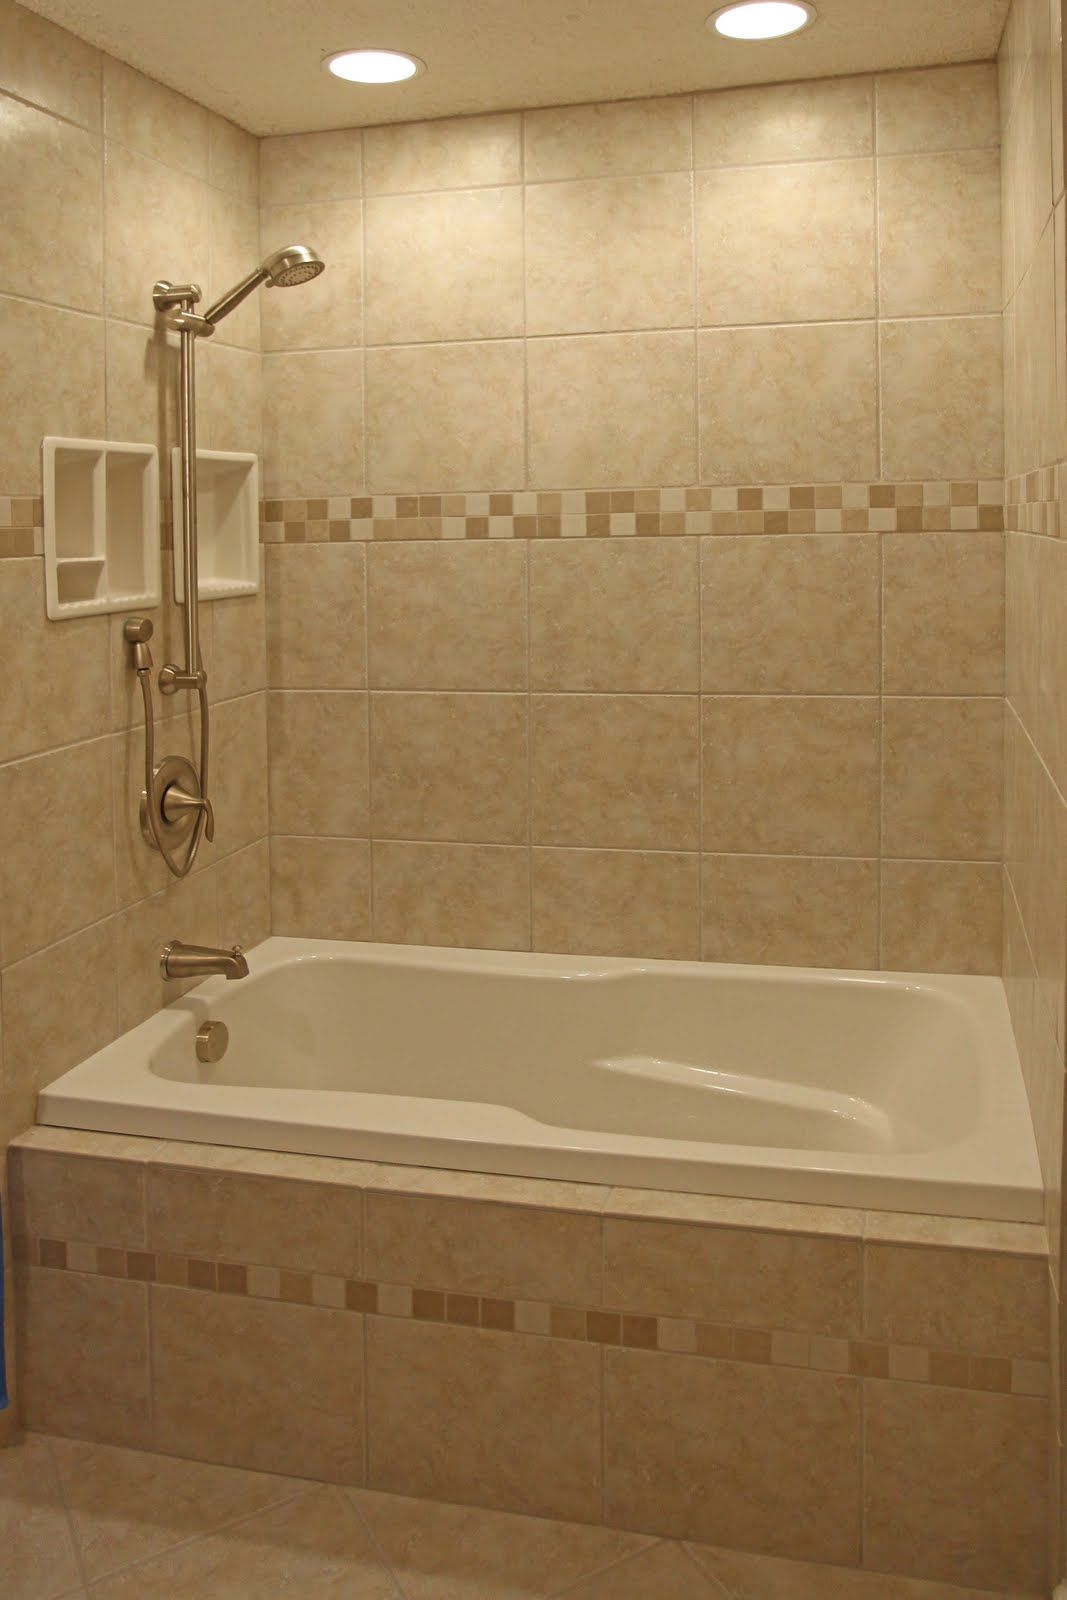 Ceramic Tile Ideas shower and bath remodel | bathroom shower design ideas » ceramic